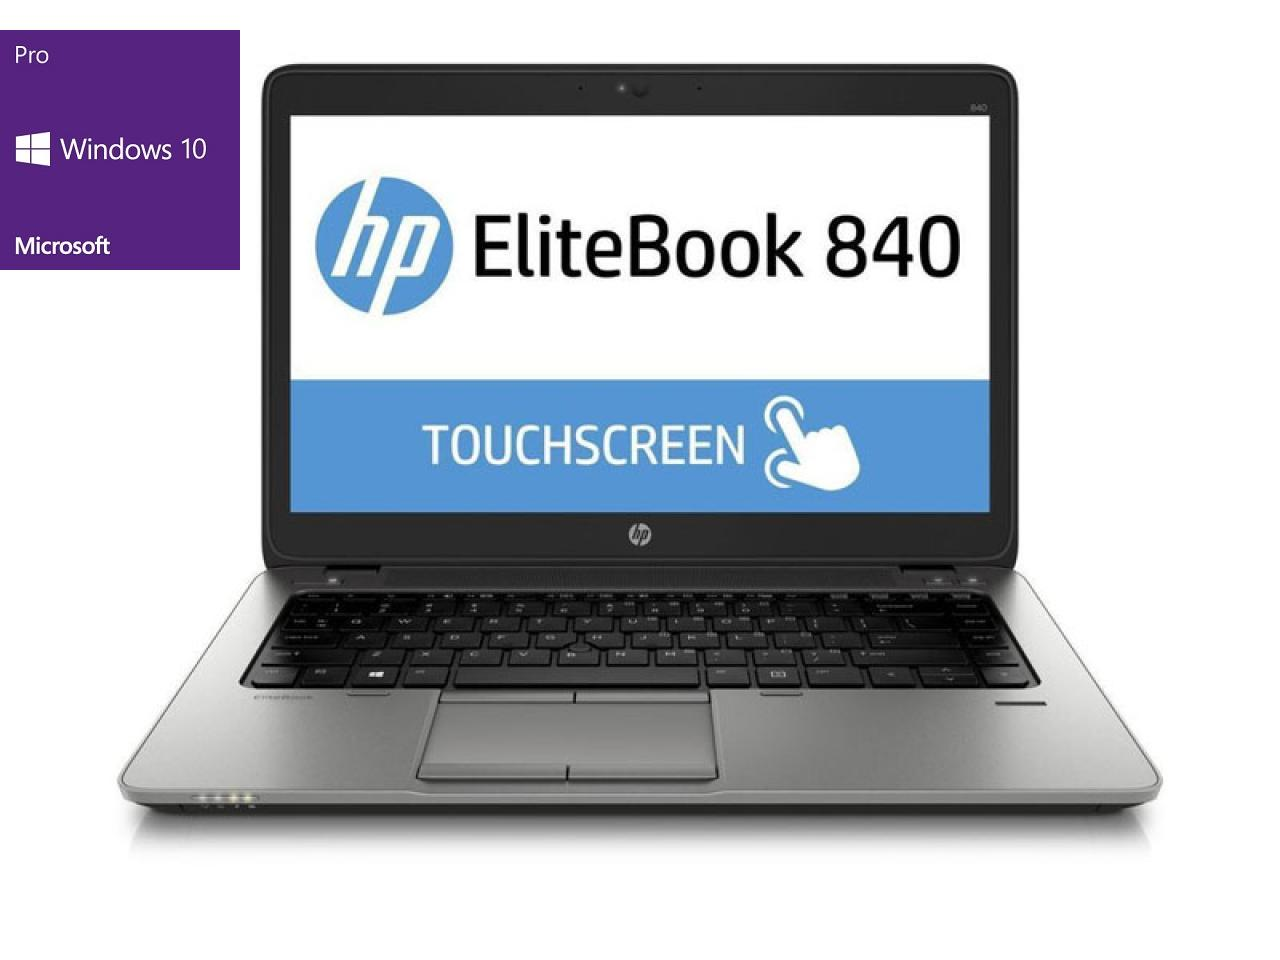 Hewlett Packard EliteBook 840 G1 Touch  - shop.bb-net.de